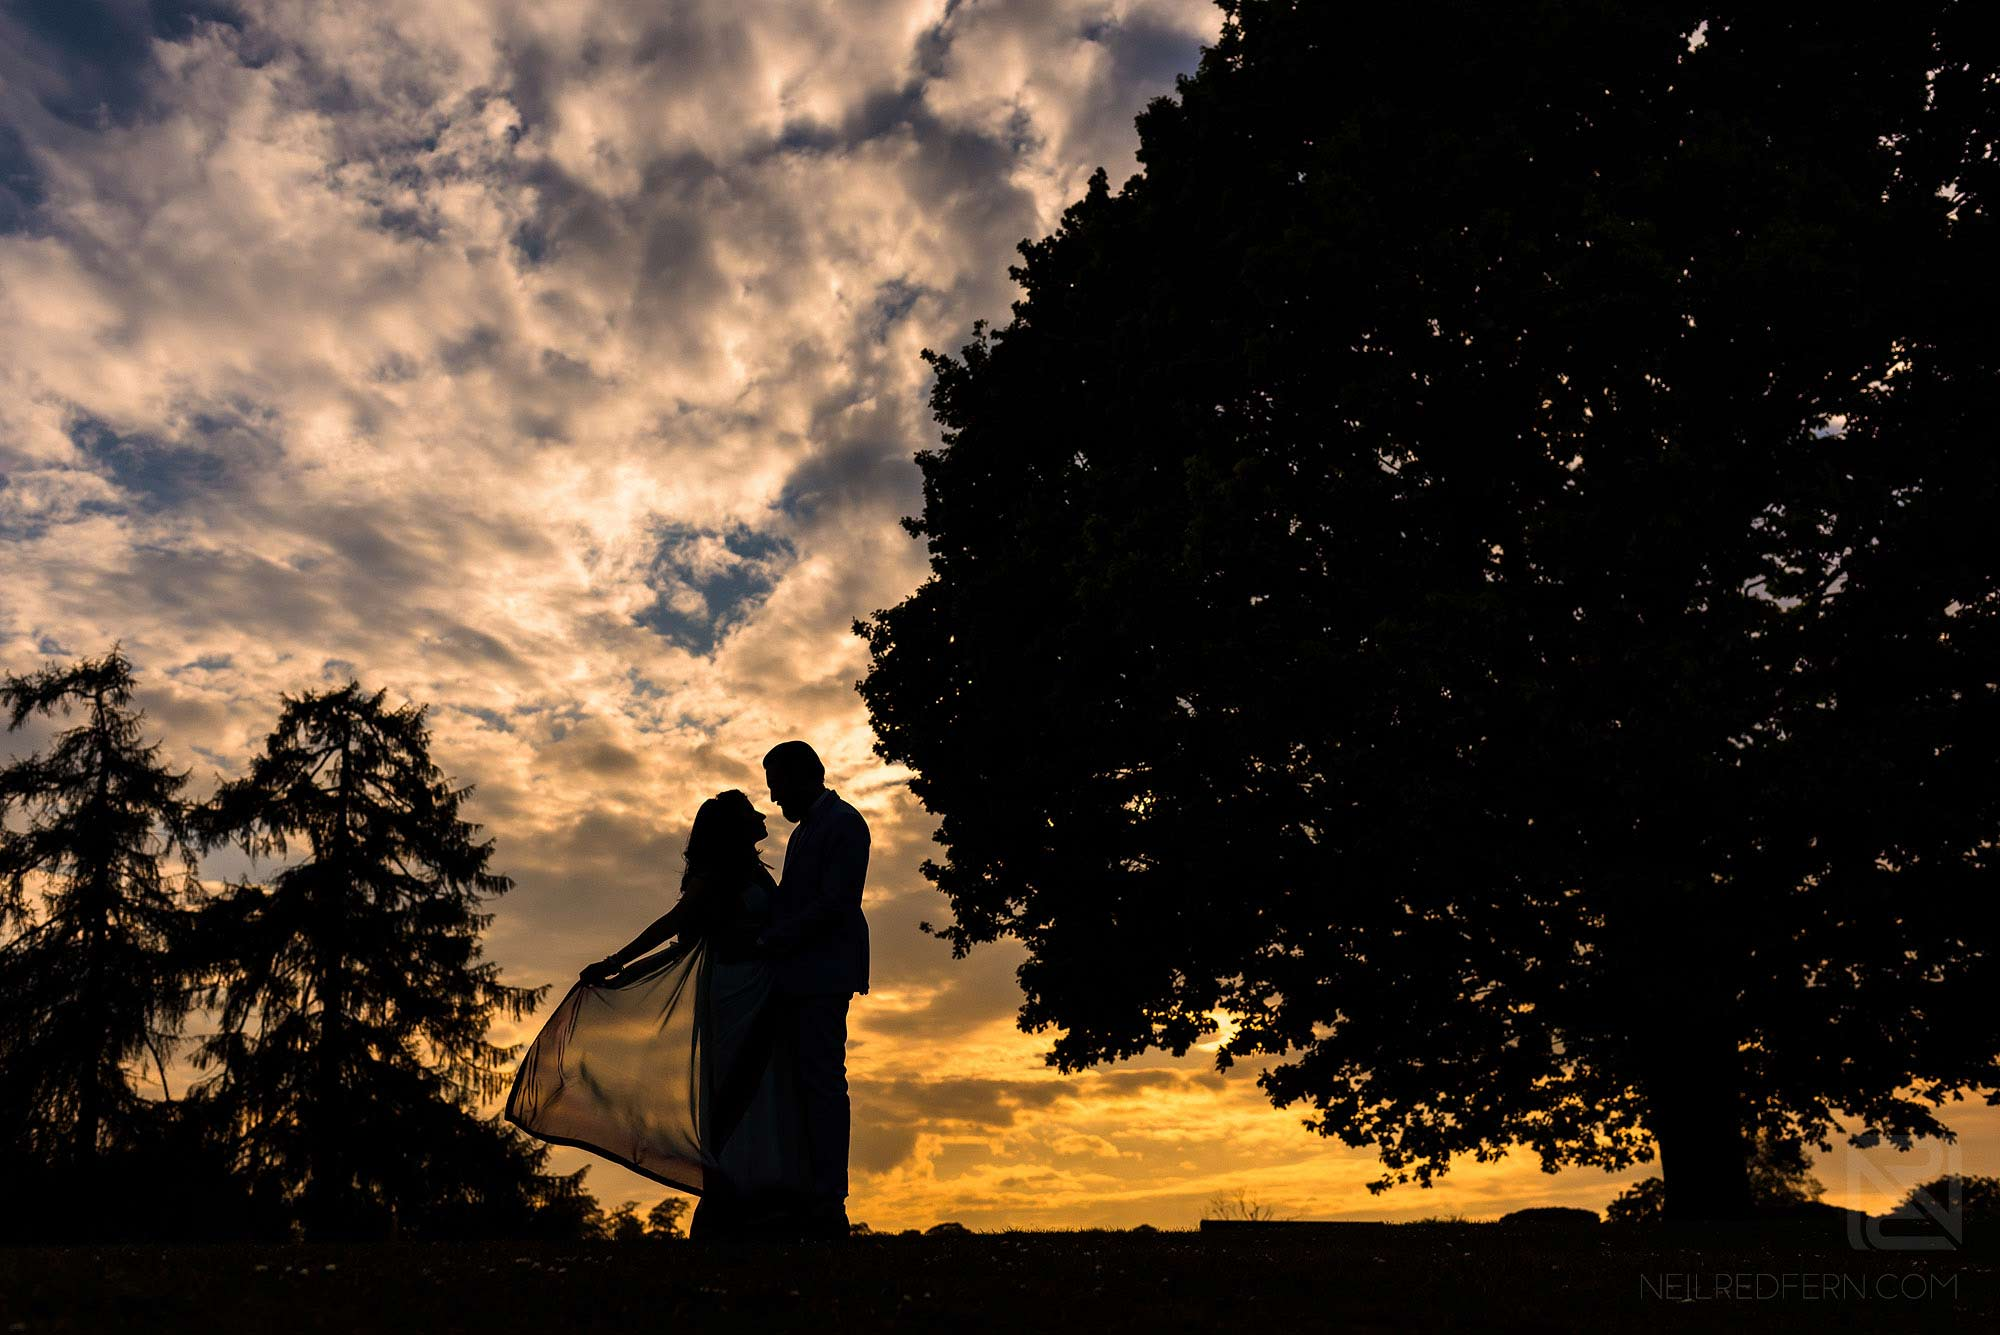 silhouette photograph of Hindu bride and groom